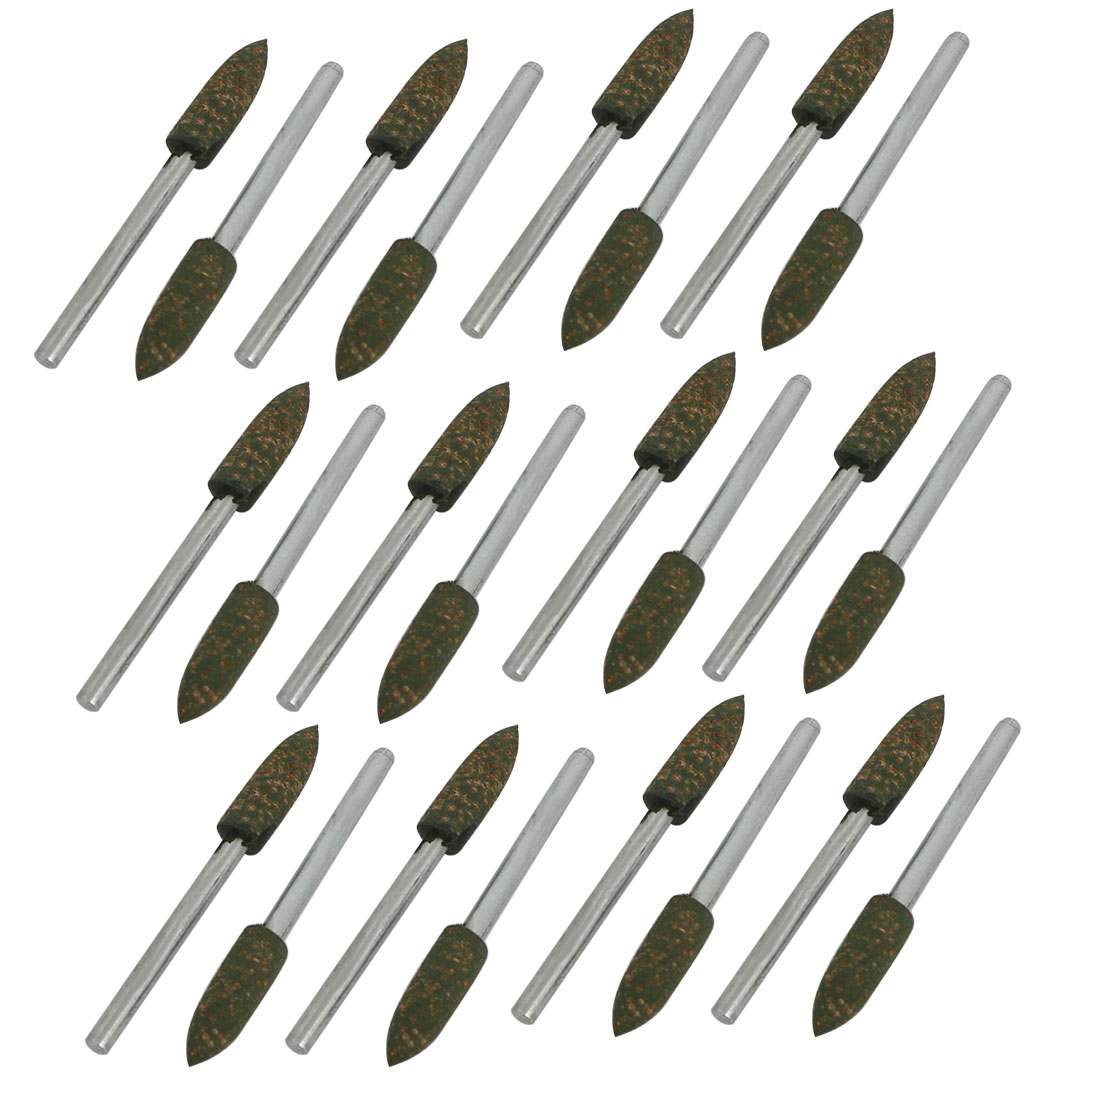 3mm Shank 5mm Cone Head Polishing Wheel Mandrel Mounted Grinding Point 24pcs by Unique-Bargains